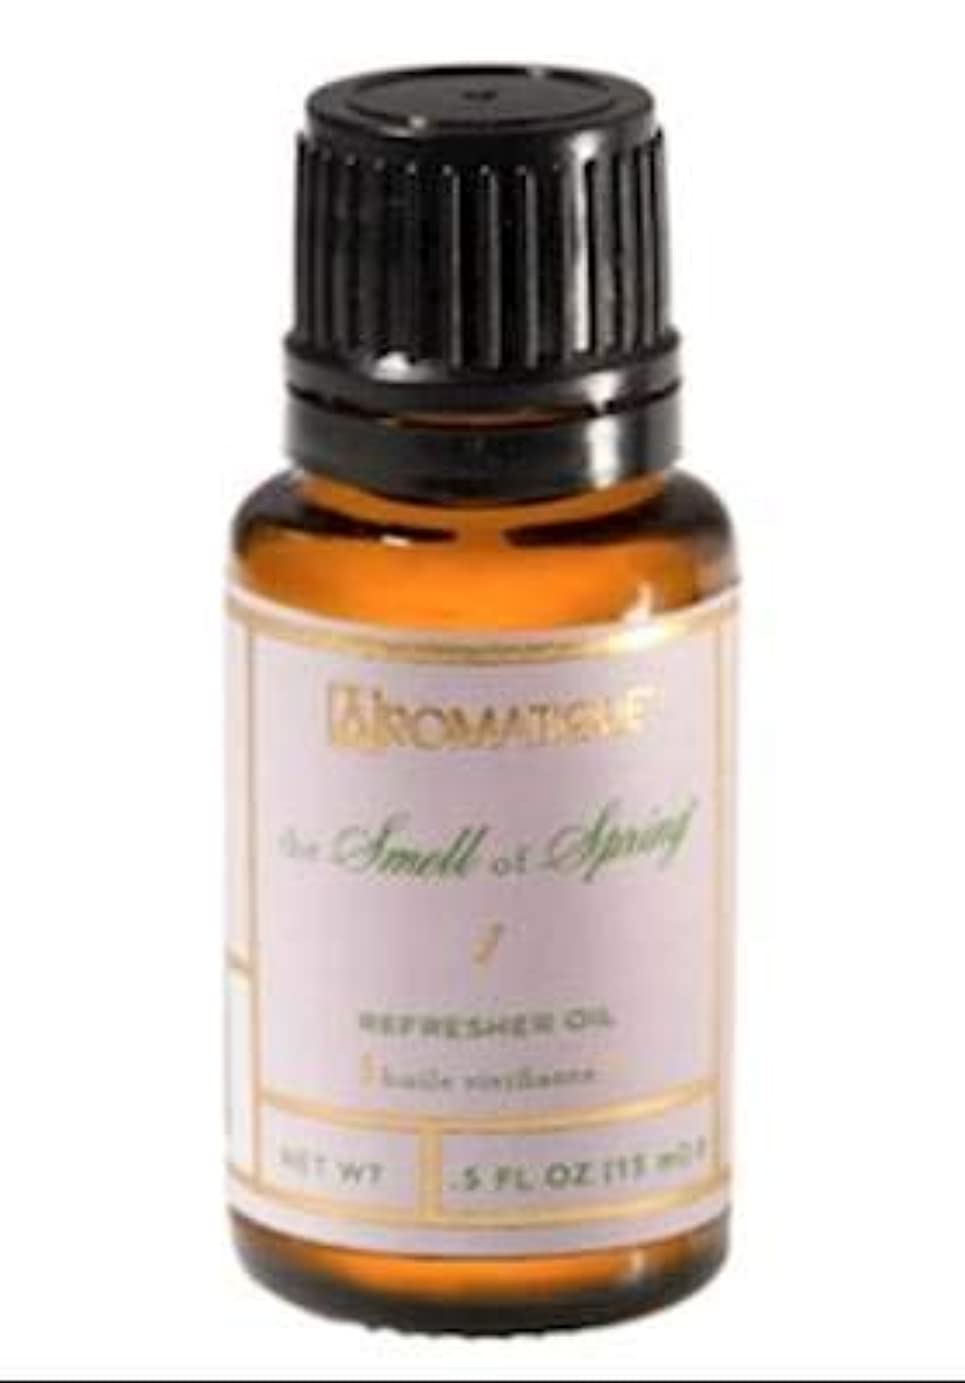 喜んで評価するサイドボードThe Smell Of Spring Refresher Oil、0.5 Oz by Aromatique